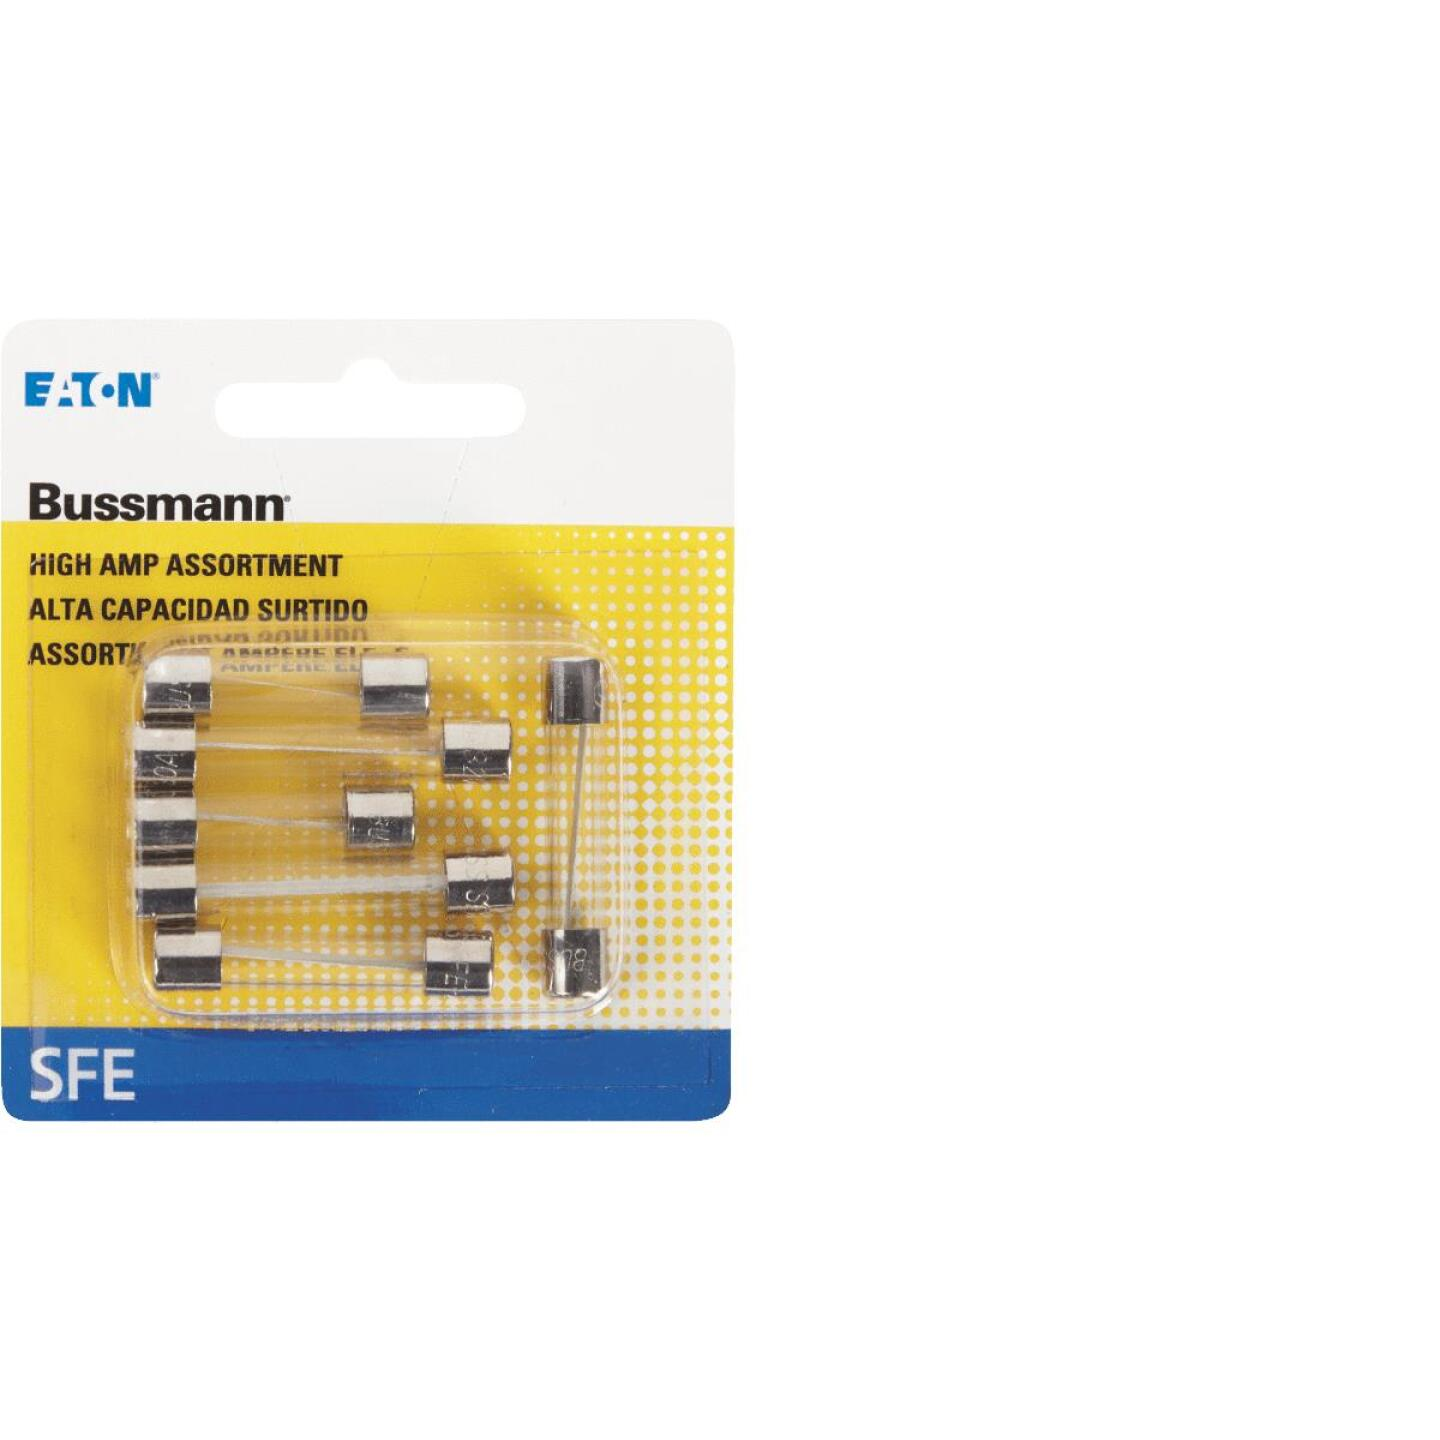 Bussmann SFE High Amp Fuse Assortment (7-Piece) Image 1